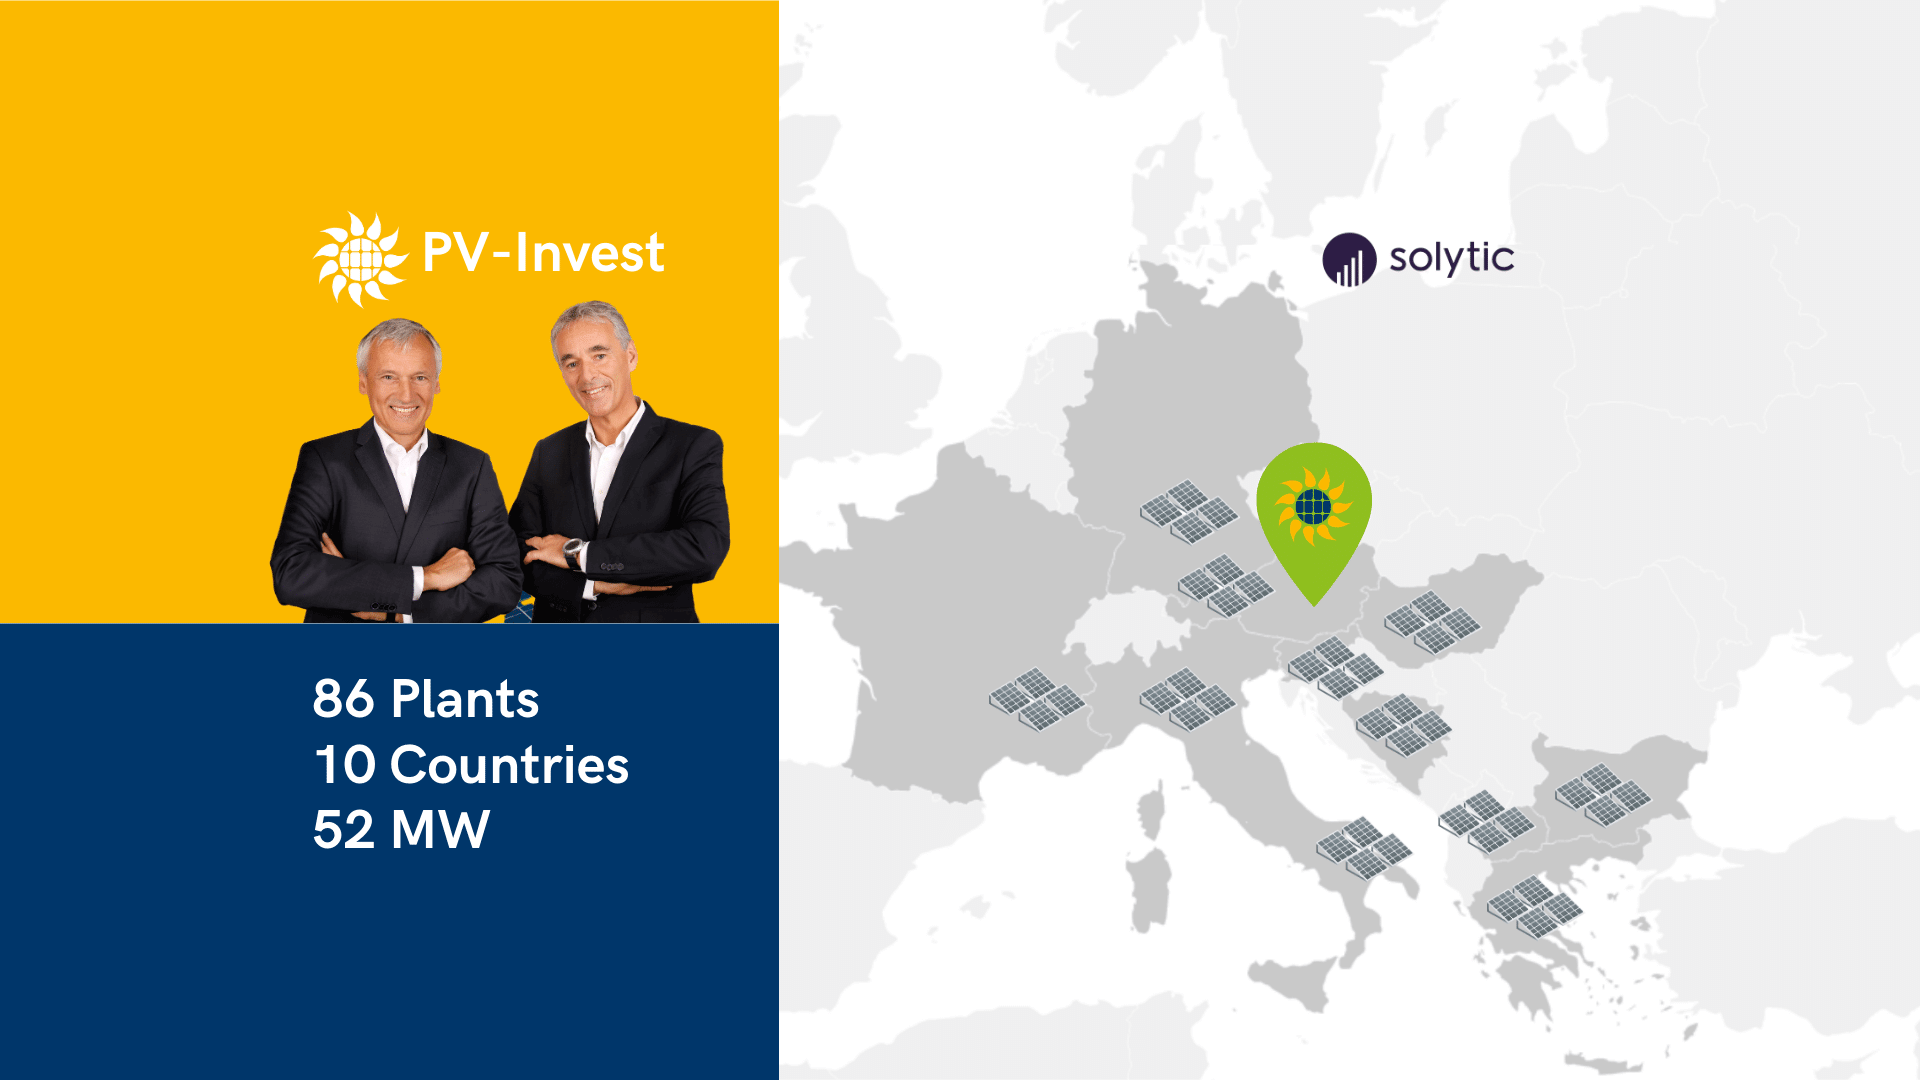 PV-Invest Plants Countries